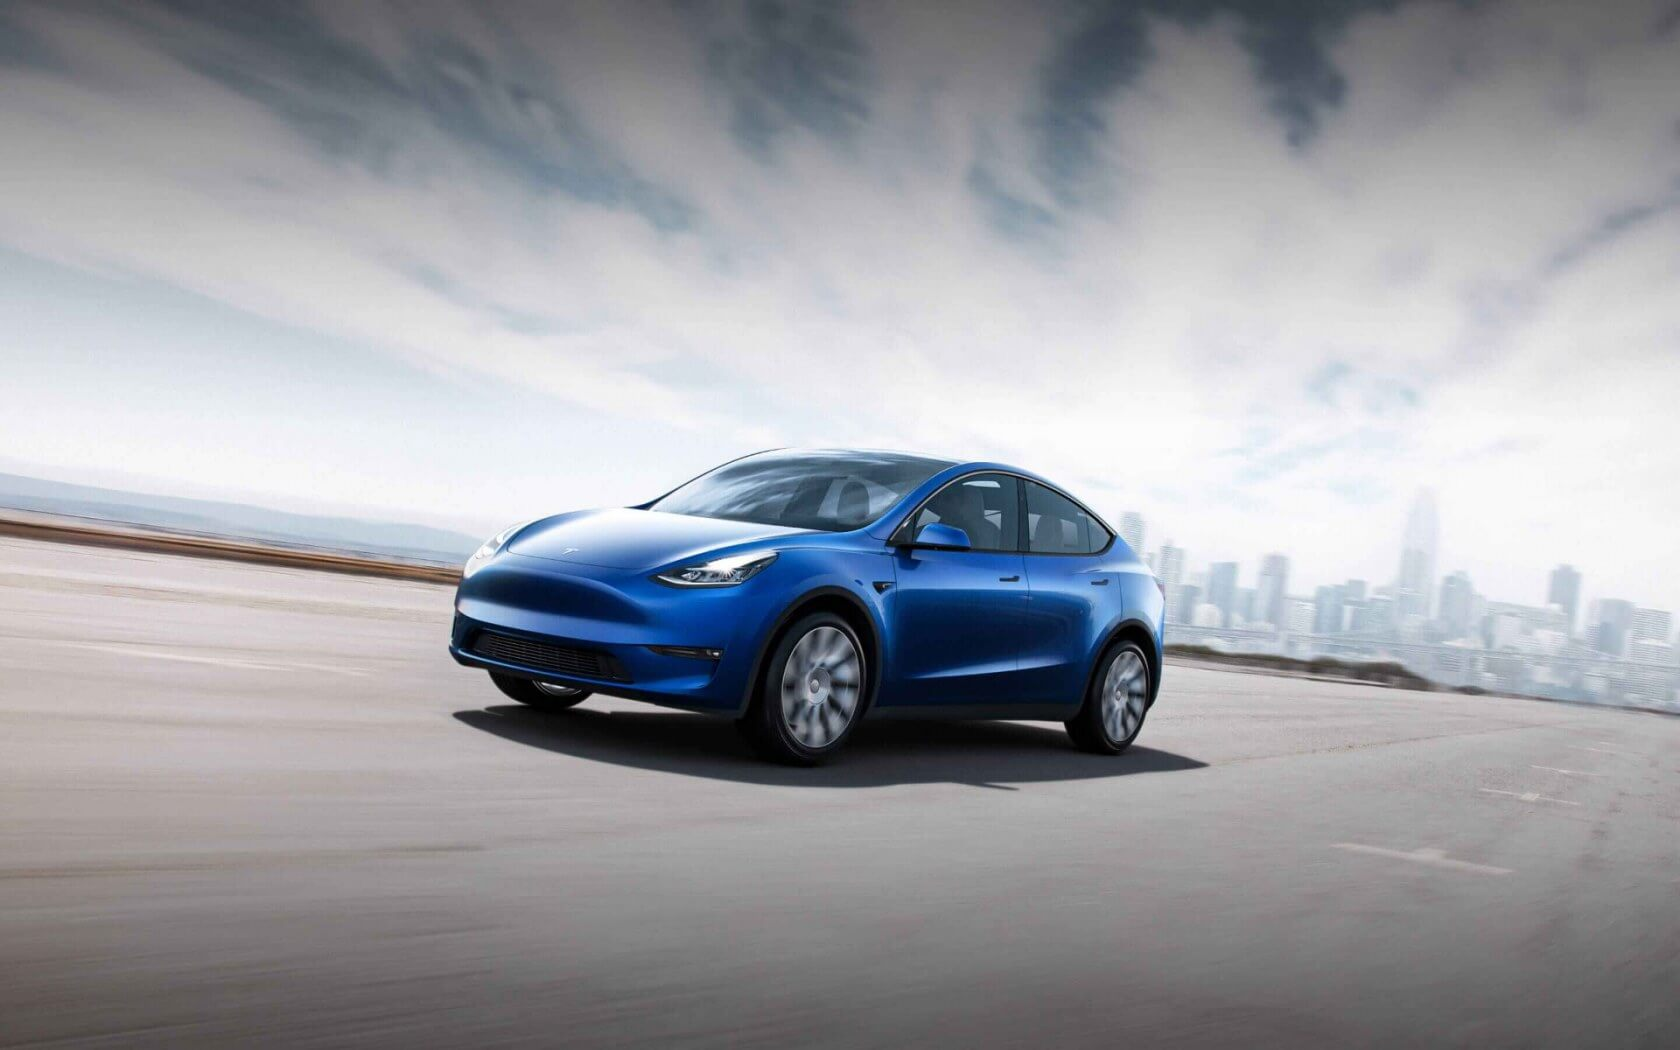 Tesla Model Y crossover is now in production, shipping in March